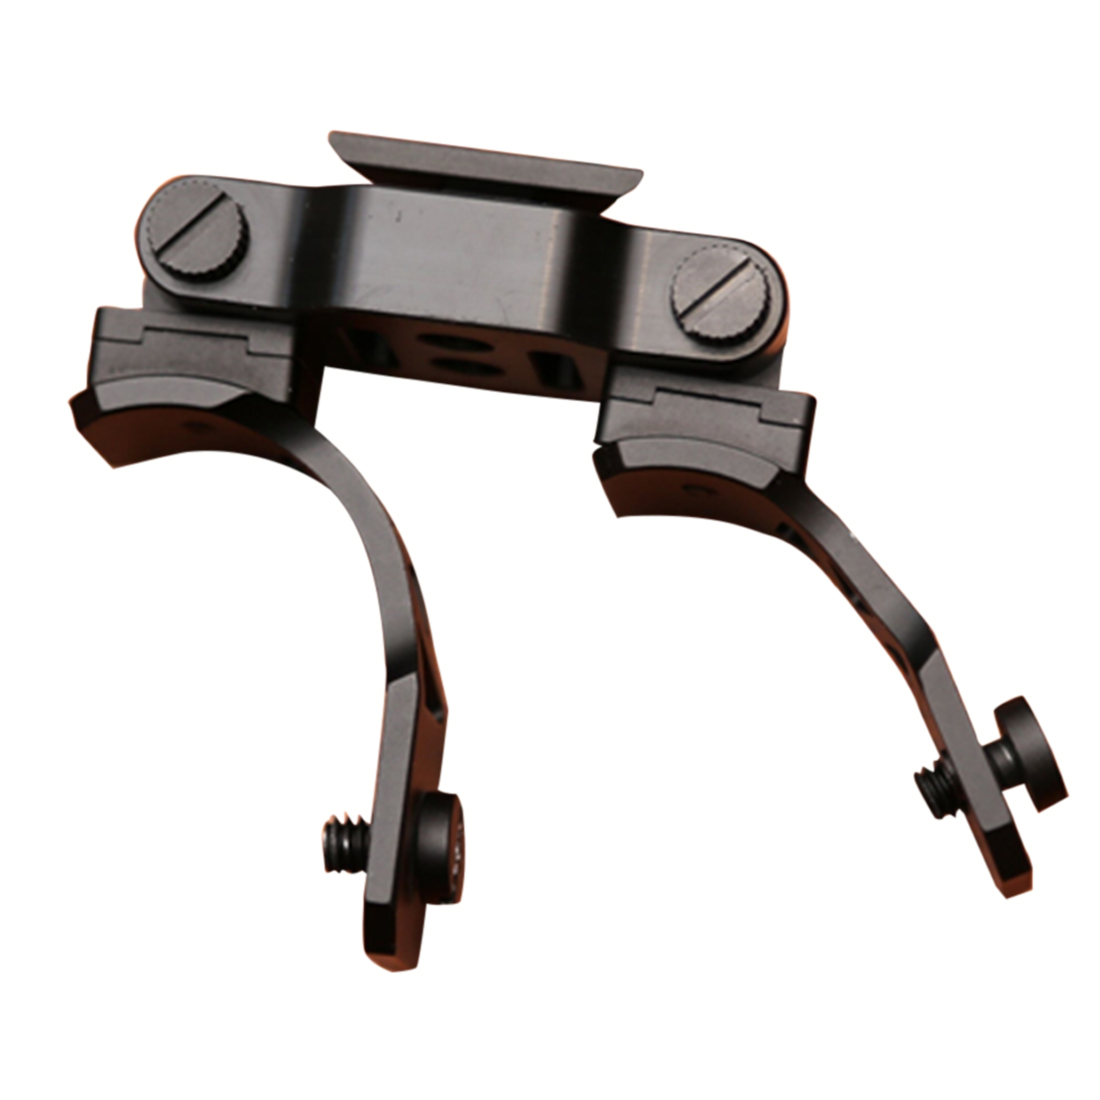 AN/PVS-14 Dual Bracket Holder For Binocular Night-Vision (Only Bracket, Not Included Other Accessories)